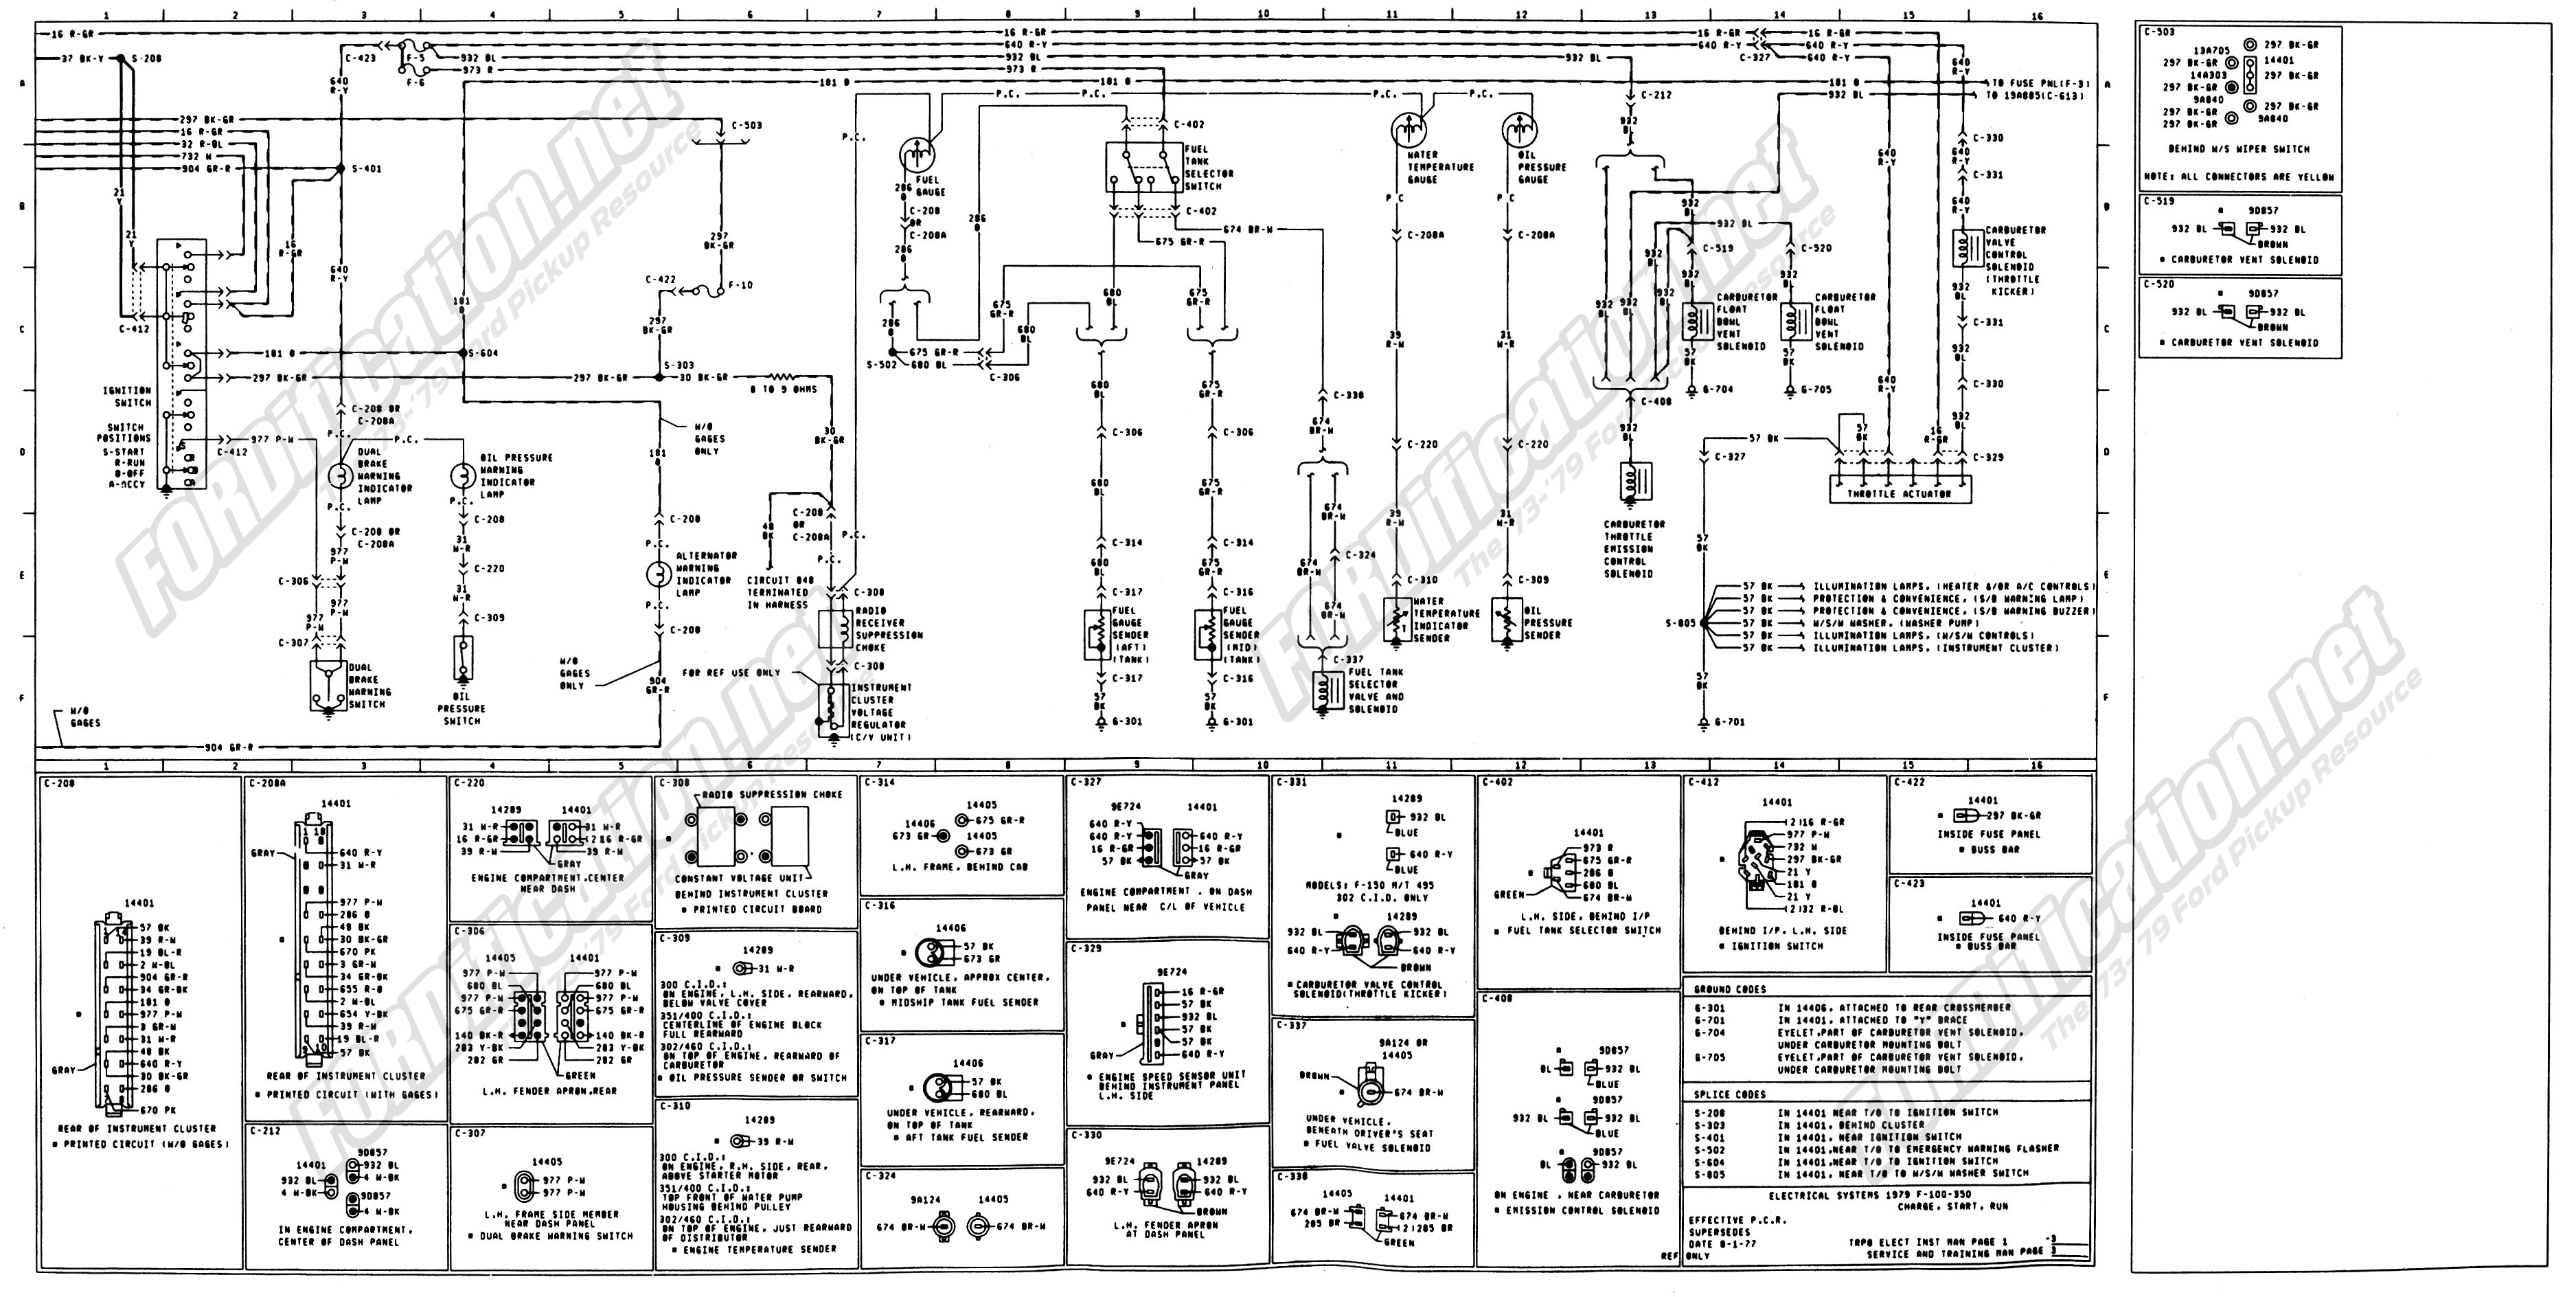 Ford Fuel Gauge Wiring Diagram List Of Schematic Circuit Diagram \u2022  CJ2A Fuel Gauge Wiring Diagram Ford F 150 Fuel Gauge Wiring Diagram